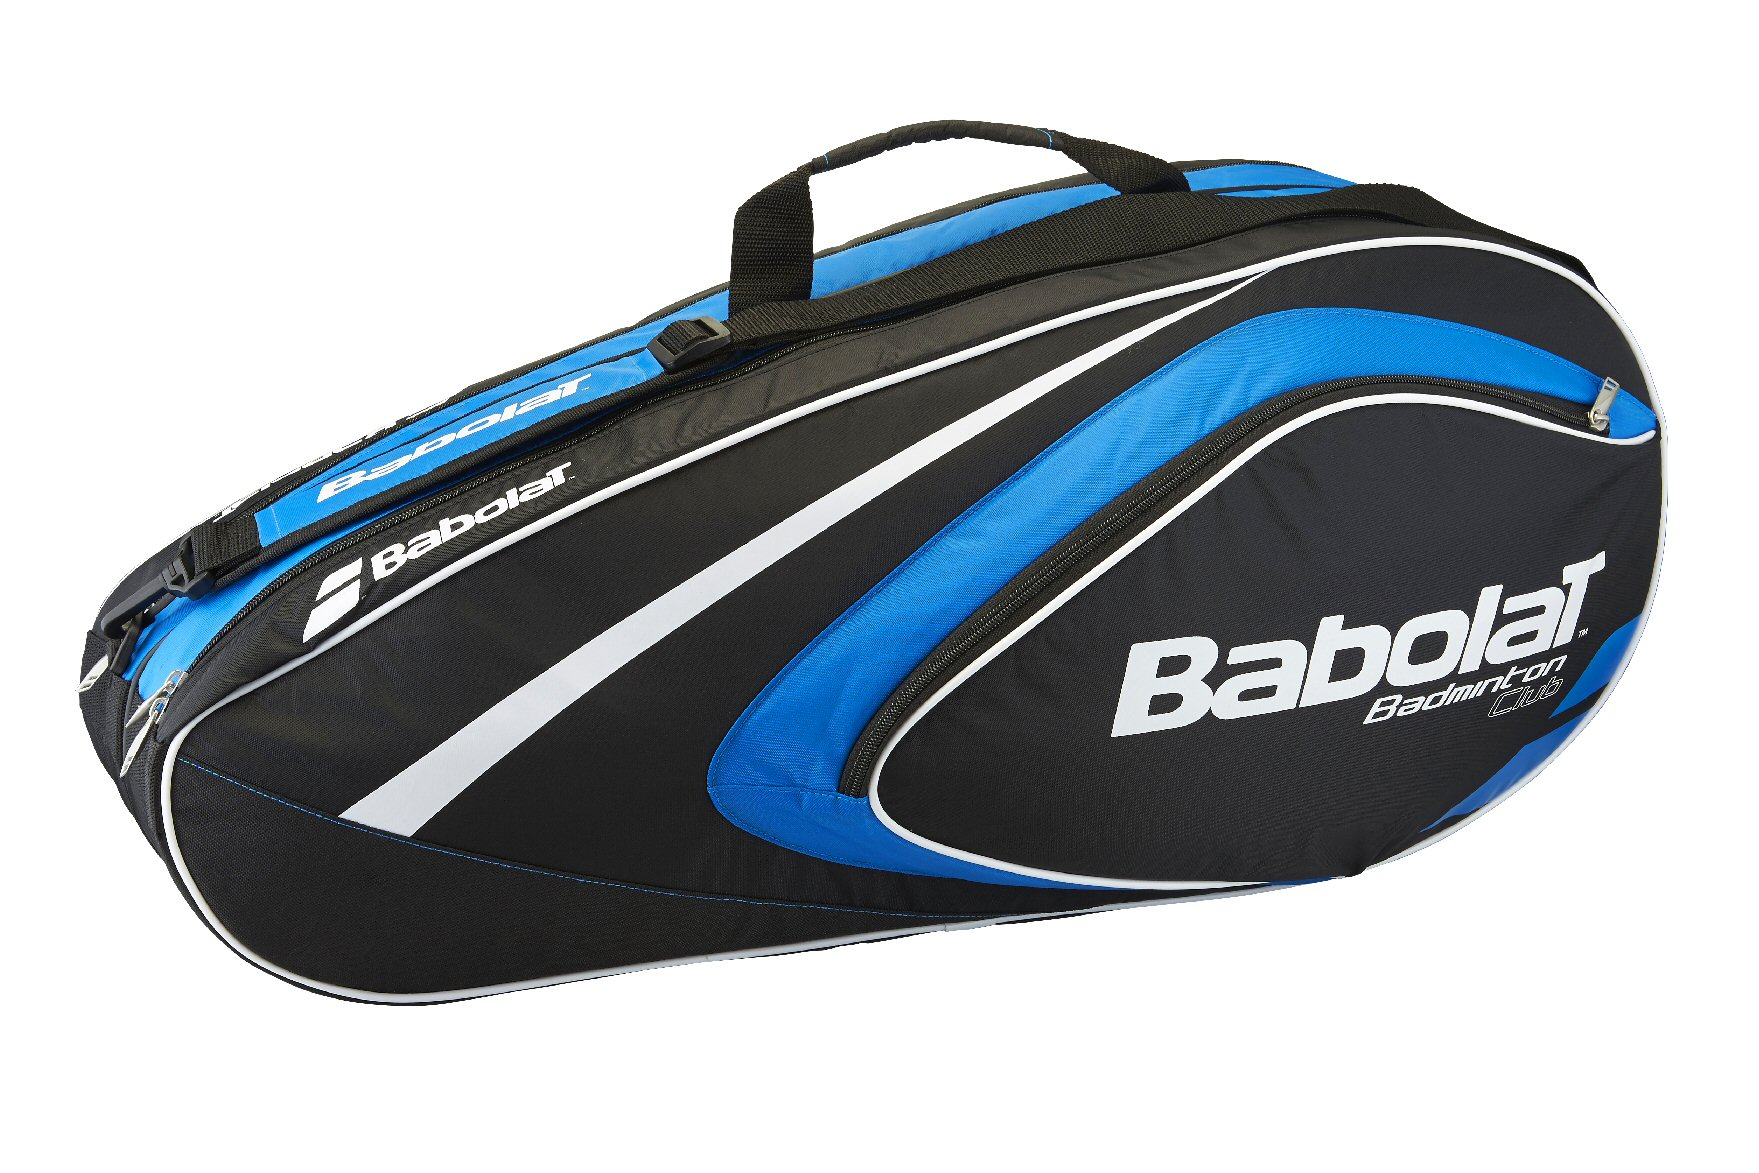 Babolat Badminton Club Line Racket Holder X8 Blue 2015